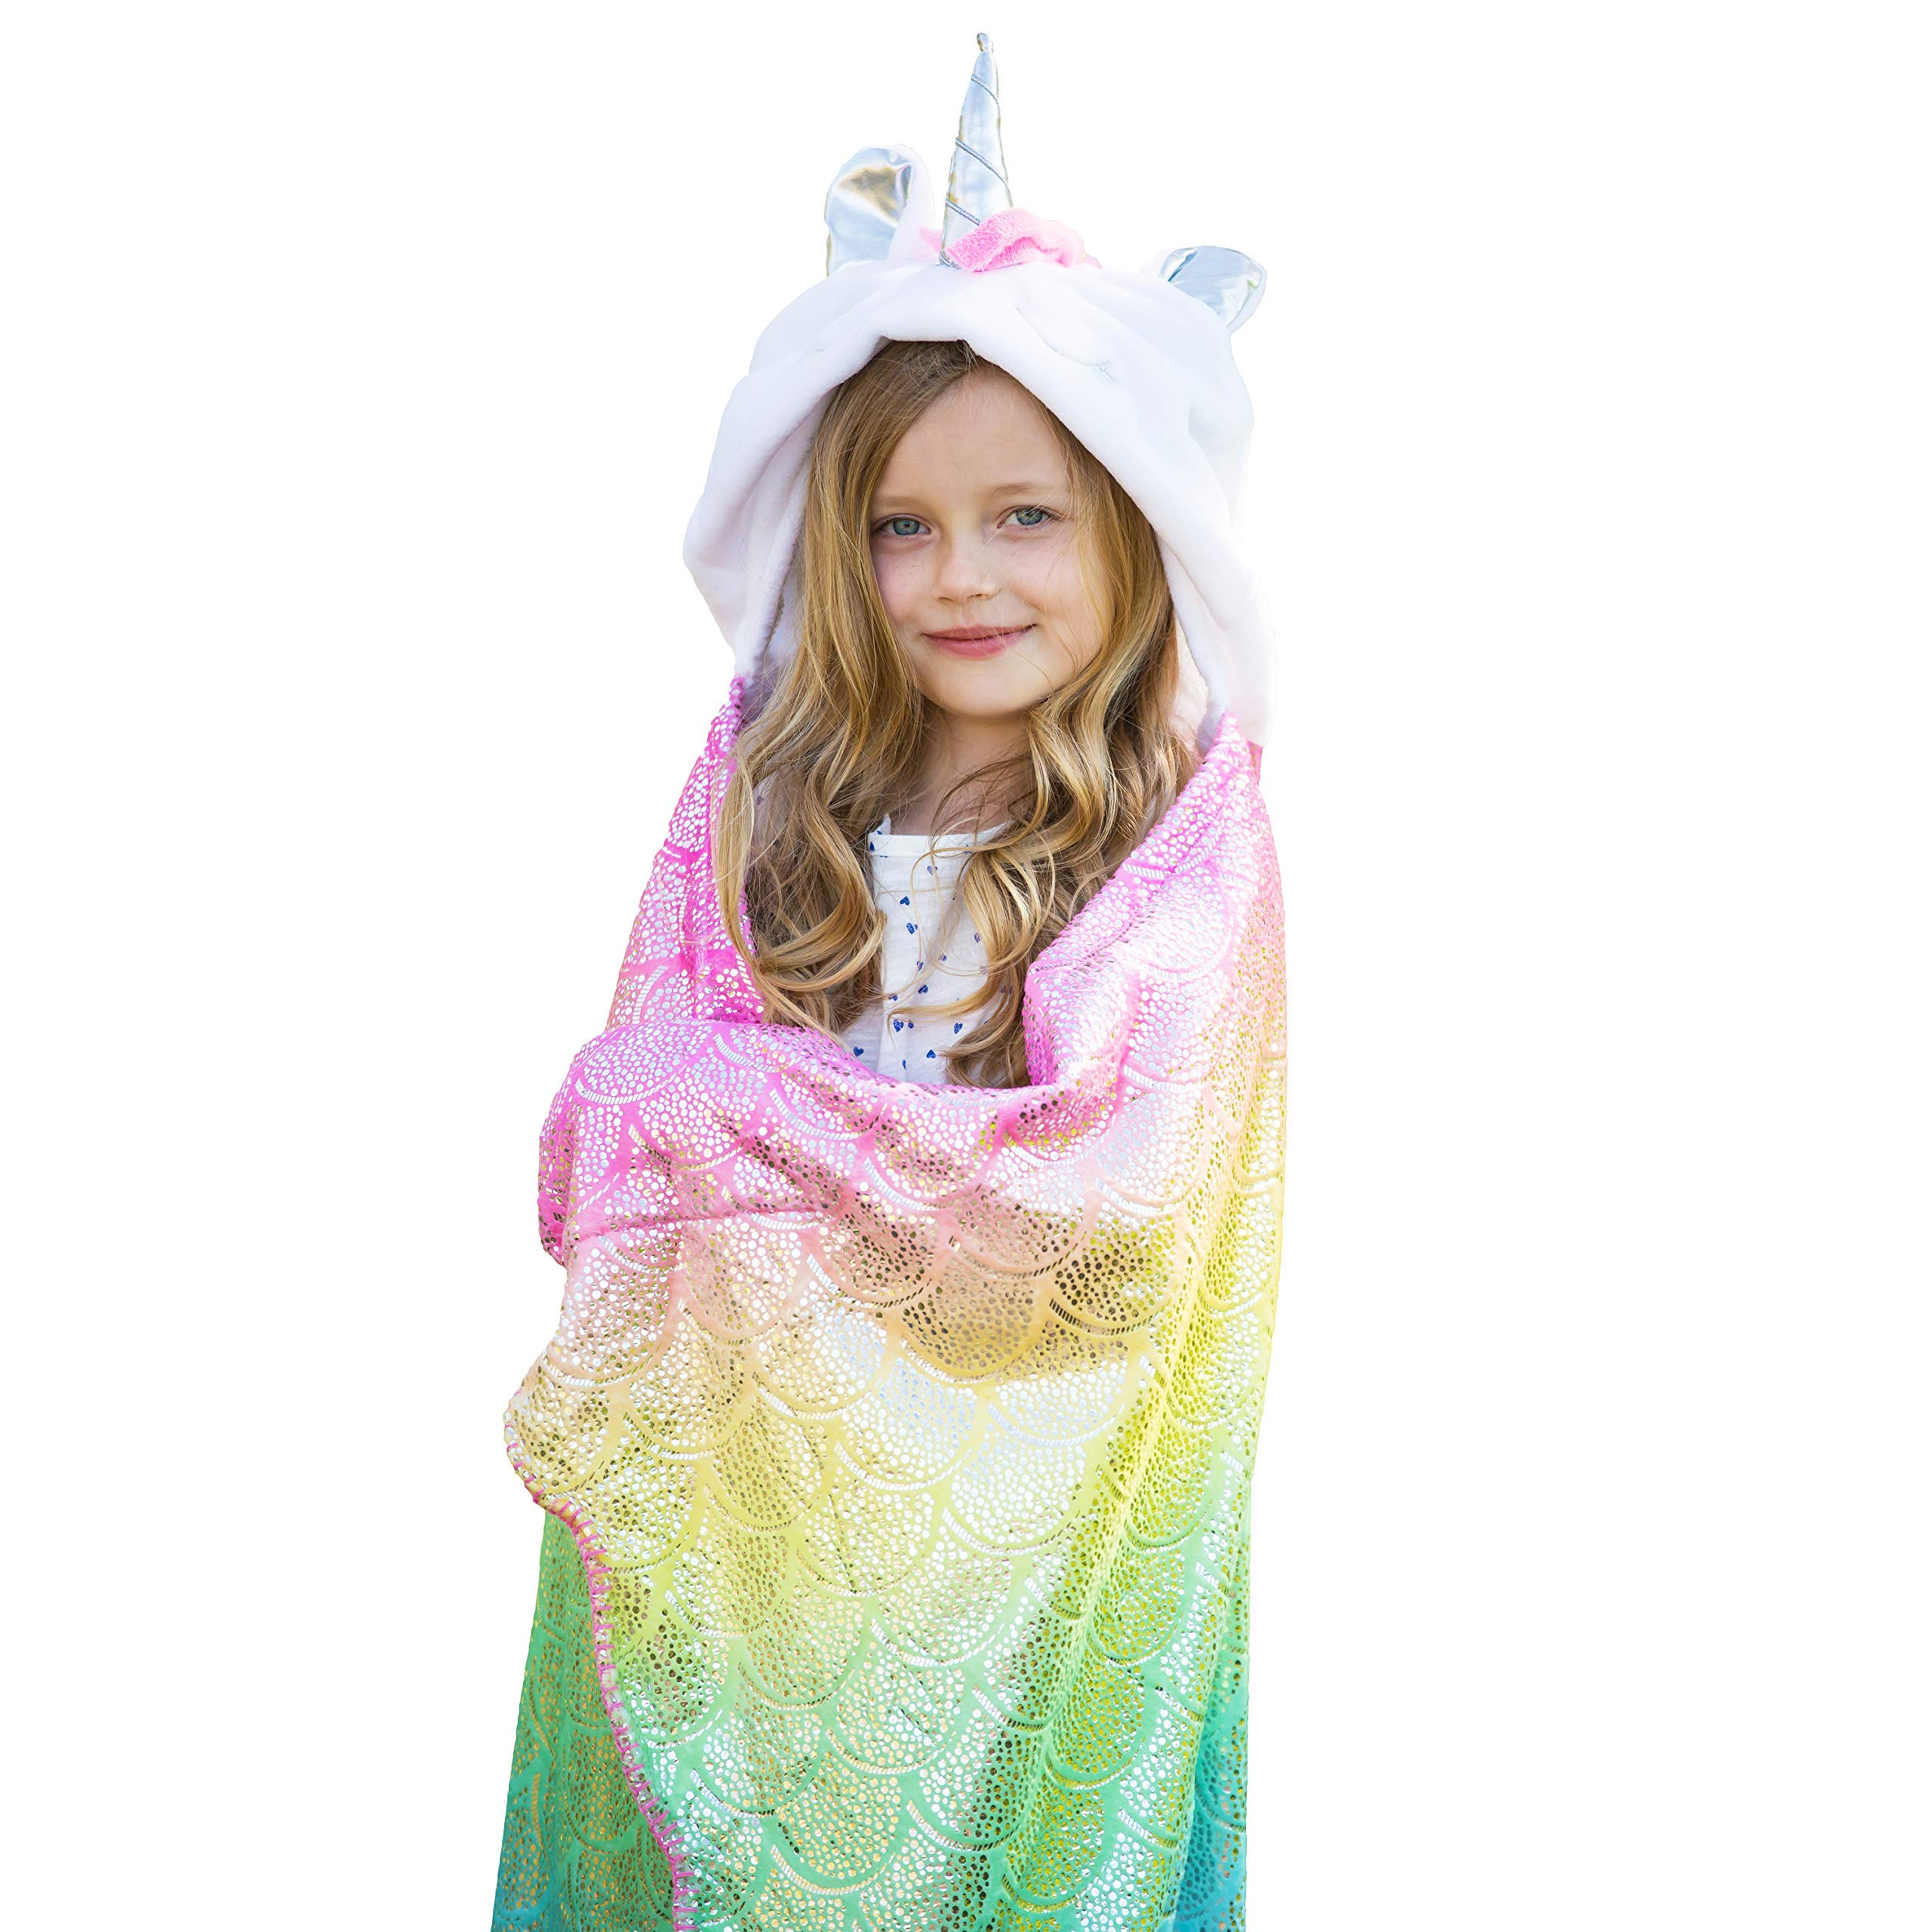 Rainbow Unicorn Blanket For Girls | Hooded Plush Colorful Unicorn Throw Blanket For Kids & Adults | Large Soft Cozy Blanket Wrap With Hood & Shiny Sparkles For Sleep Or Pretend Play | Unicorn Gift by Dreamsbe